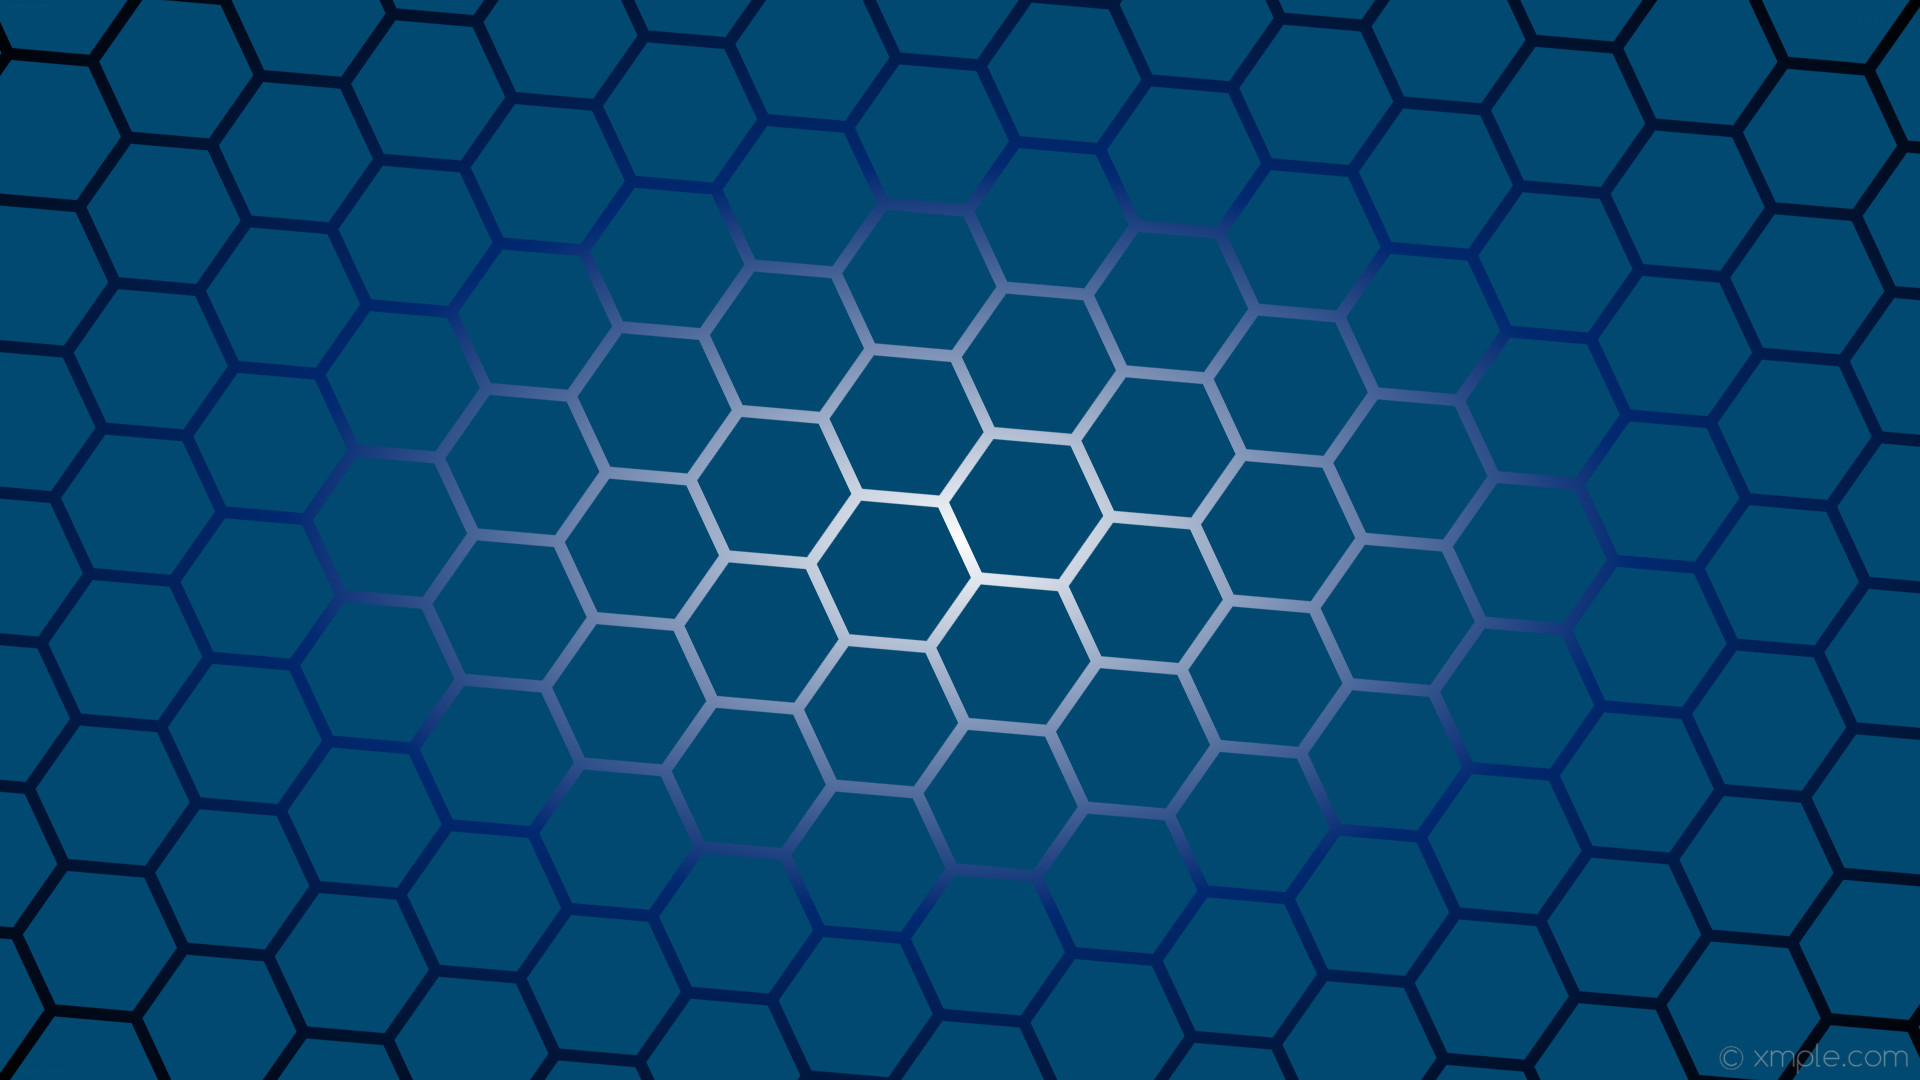 1920x1080 wallpaper gradient azure black hexagon glow white #014970 #ffffff #012870  diagonal 25°